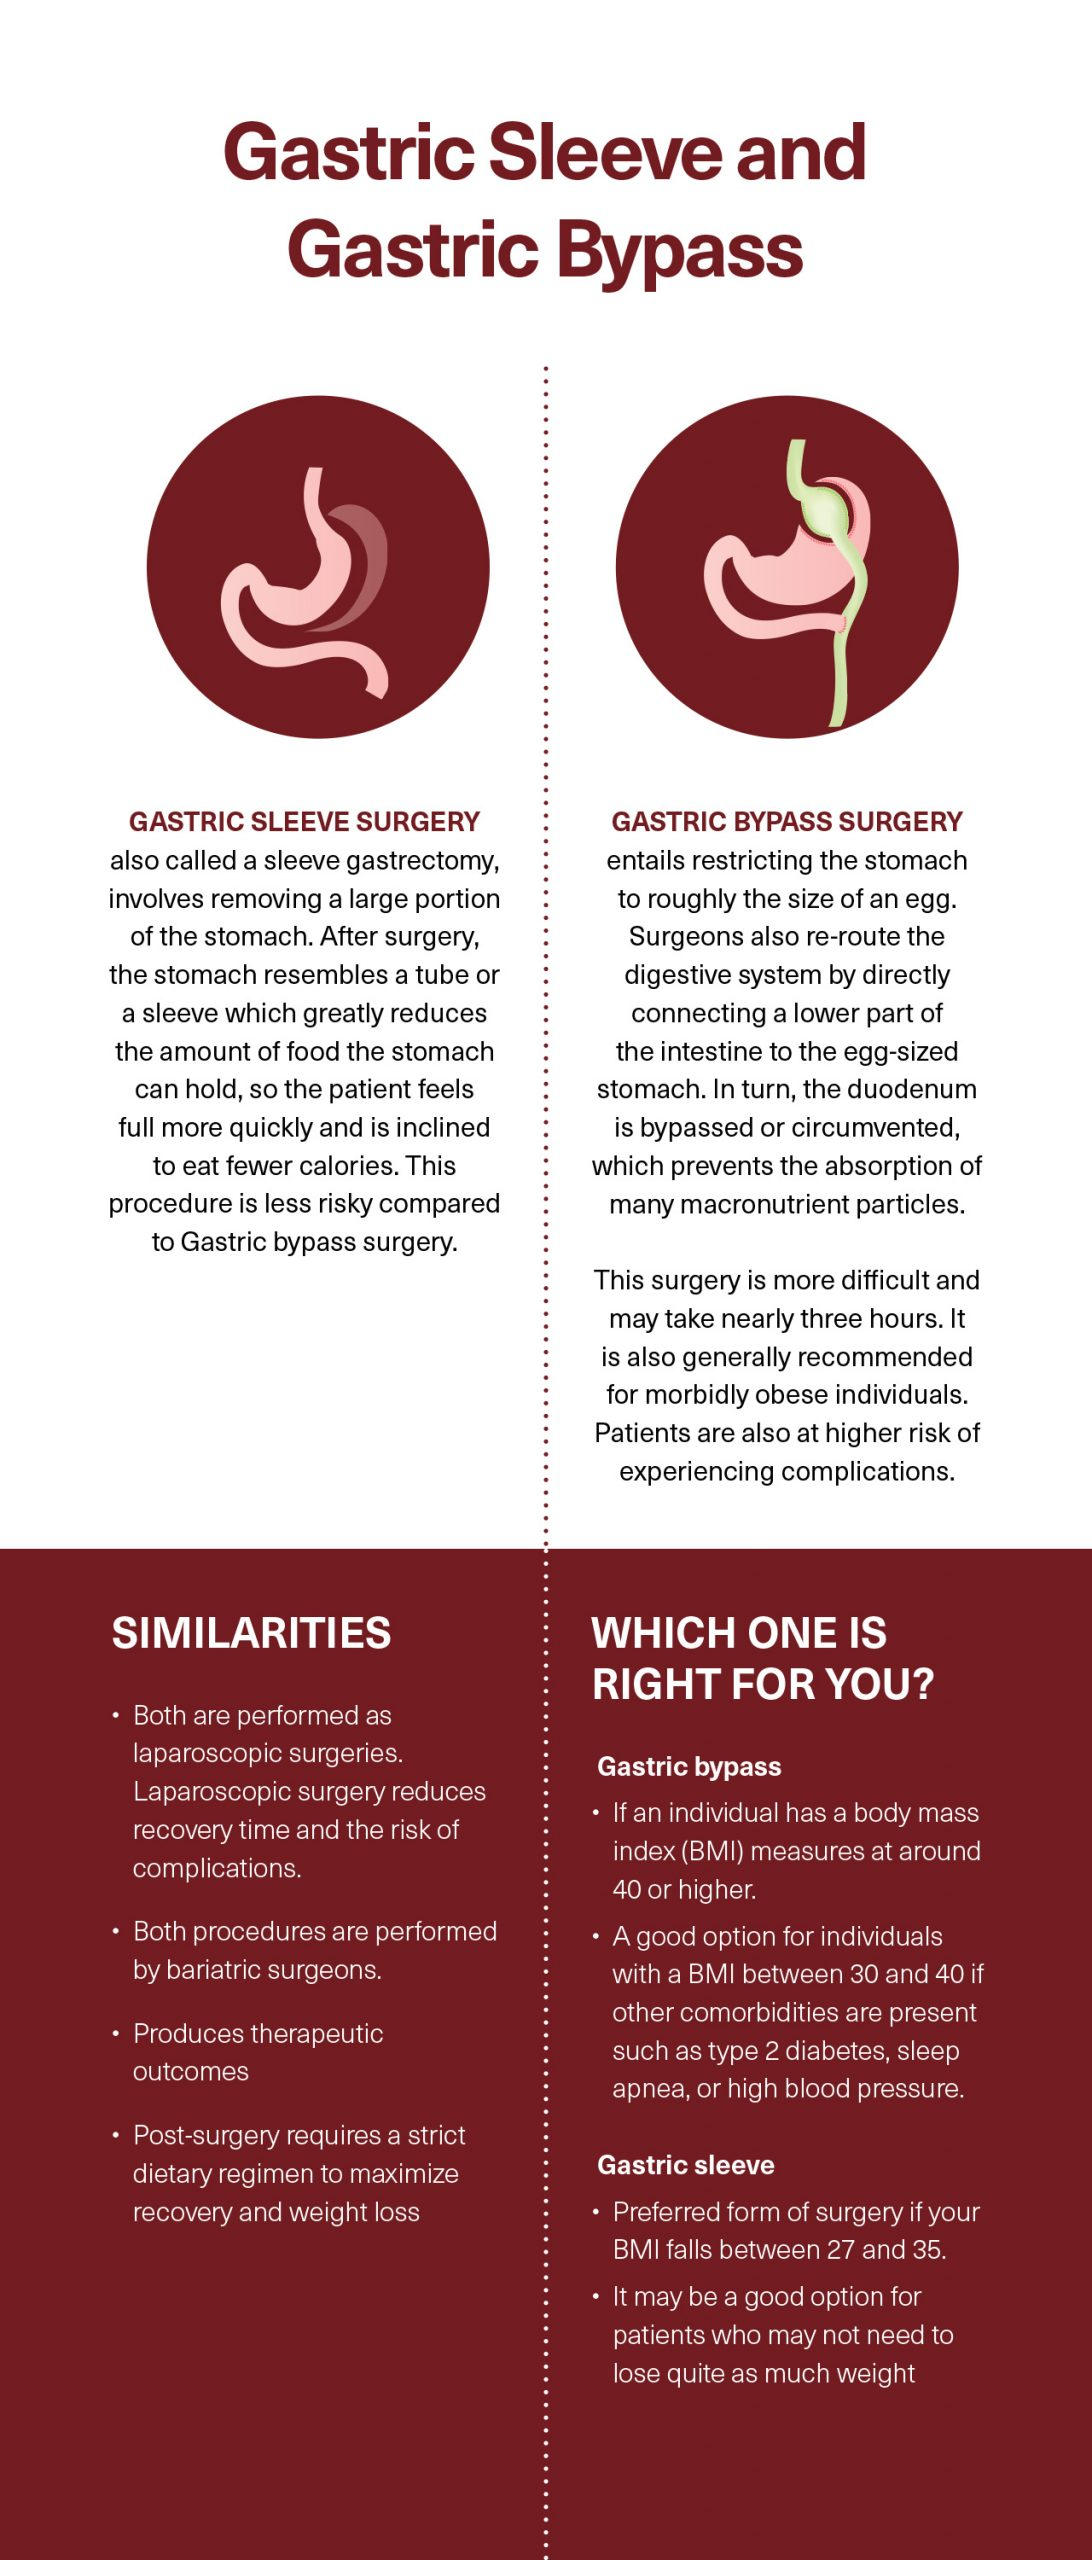 Gastric Sleeve and Gastric Bypass